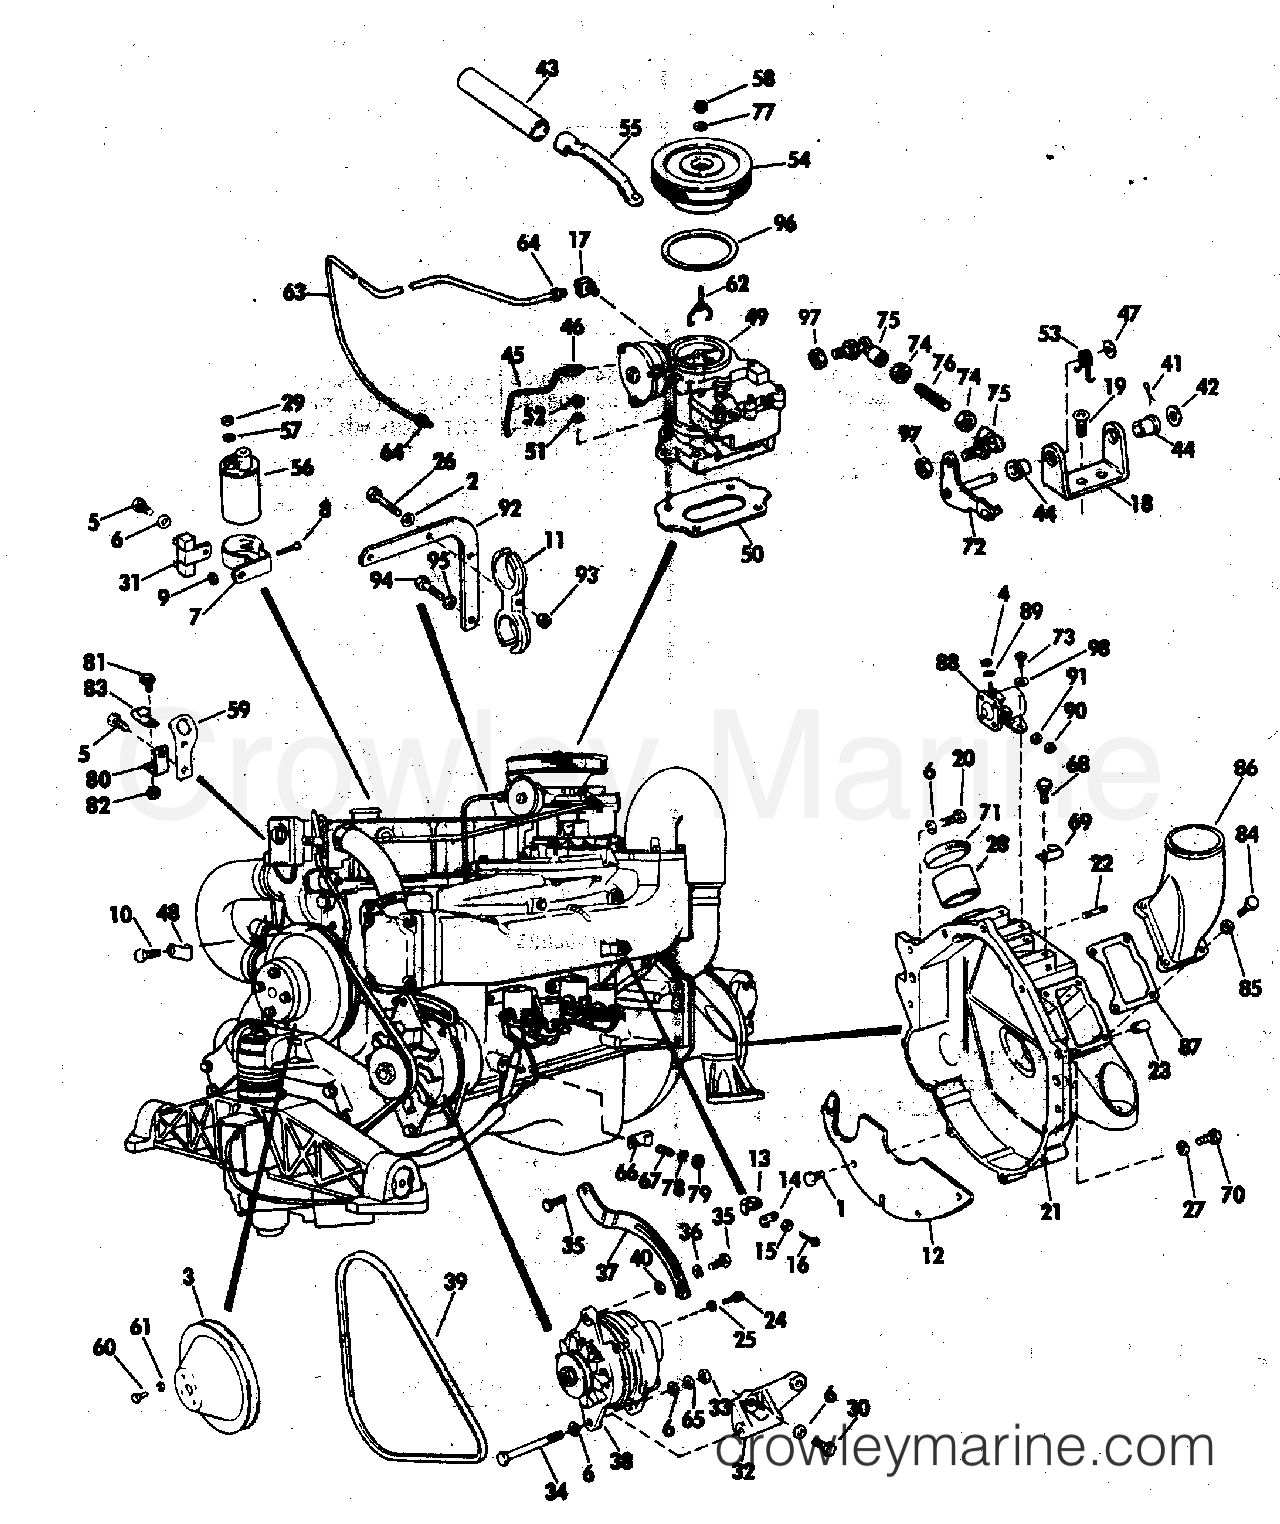 miscellaneous group 140 hp stern drive auto electrical wiring diagram Cole Hersee 7157 miscellaneous group 140 hp stern drive